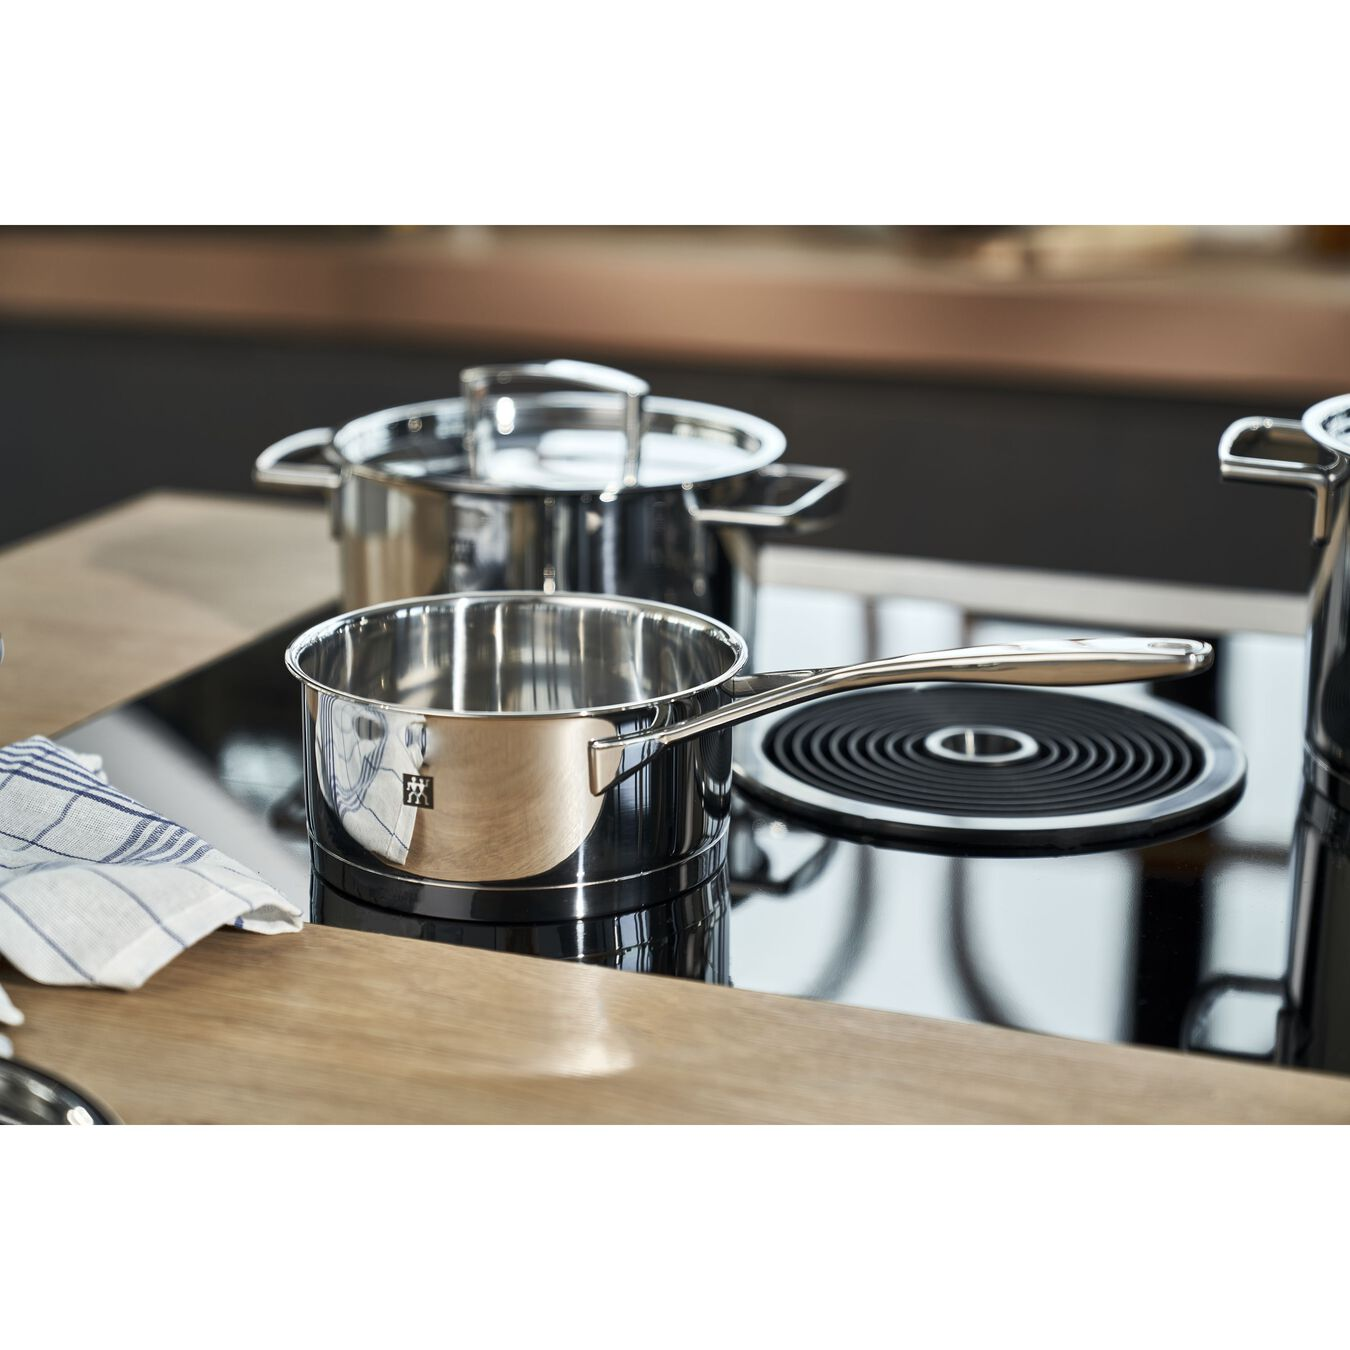 Ensemble de casseroles 5-pcs, Inox 18/10,,large 3